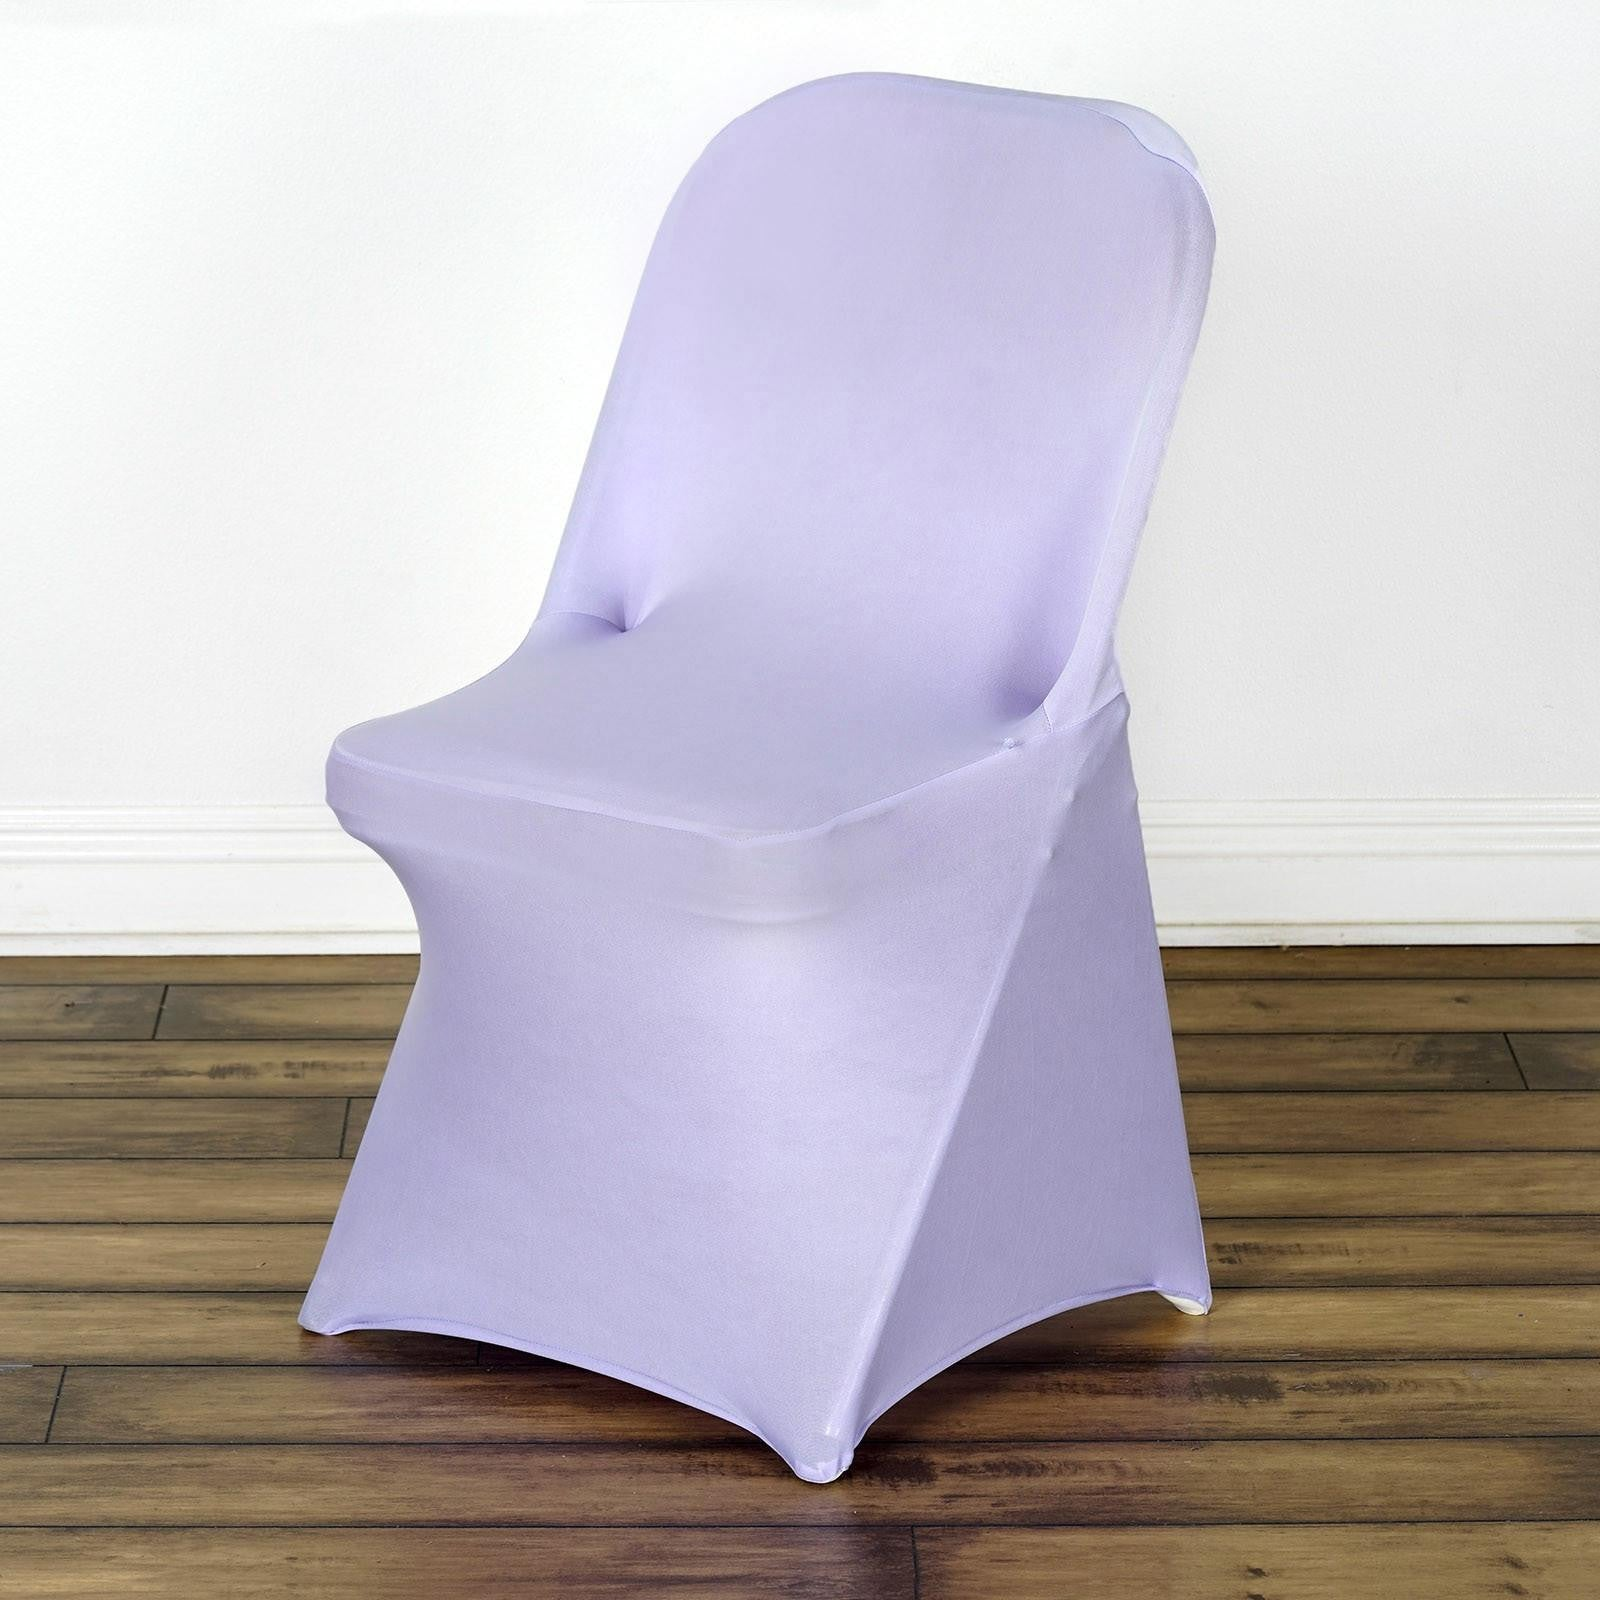 Folding chair covers wholesale under 1 - Wholesale Lavender Spandex Stretch Folding Chair Cover Wedding Party Event Sold Out